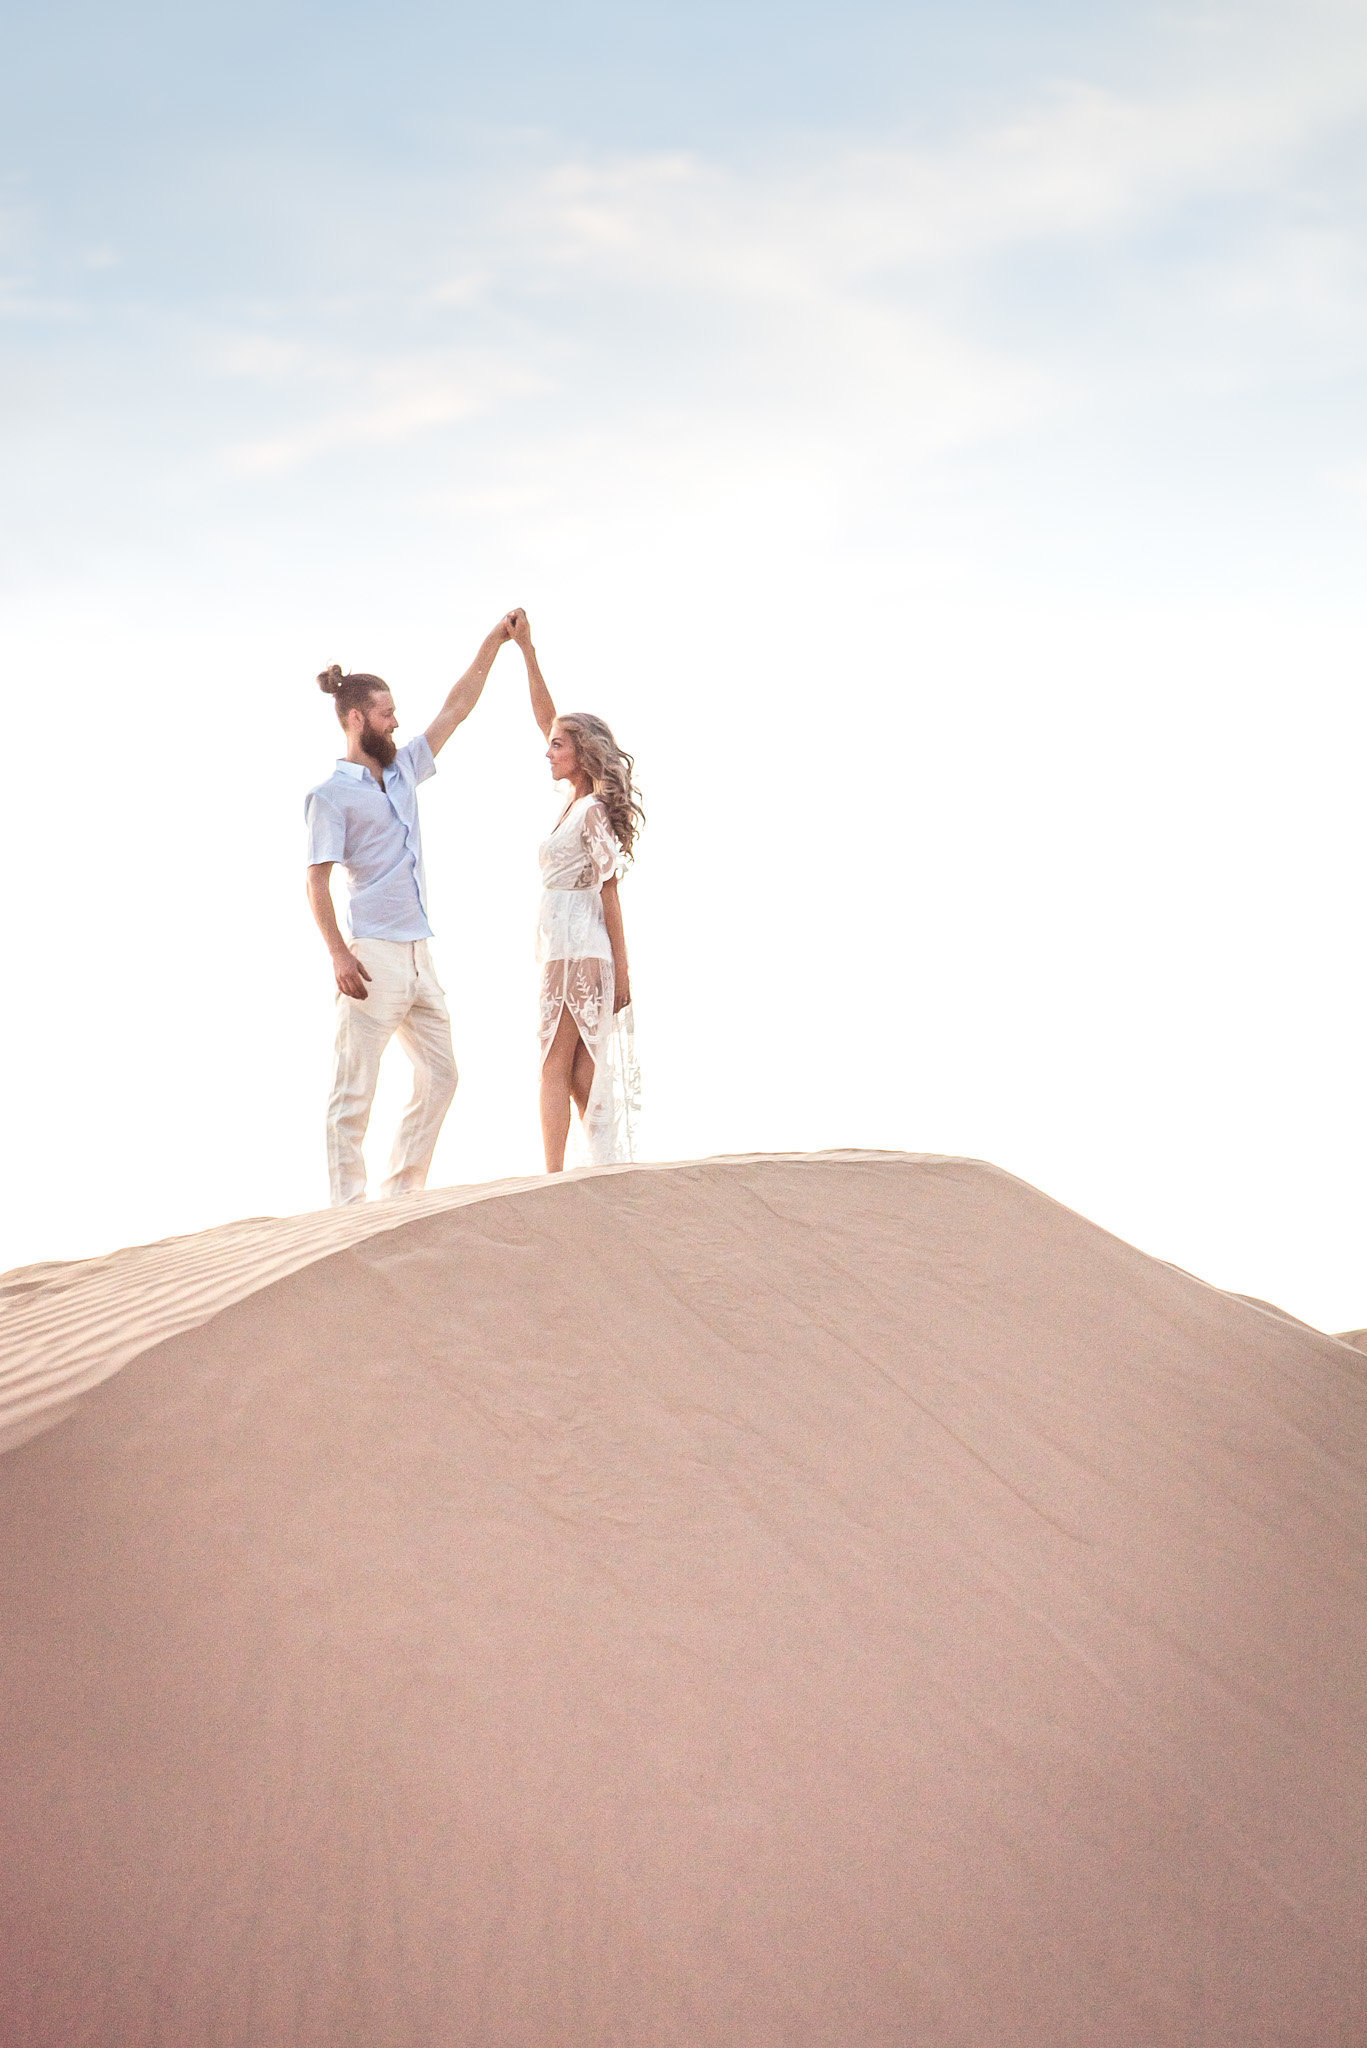 Glamis Sand Dunes Boho Engagement Session Photo of Engaged Couple Dancing on a Sand Dune | Tucson Wedding Photographer | West End Photography